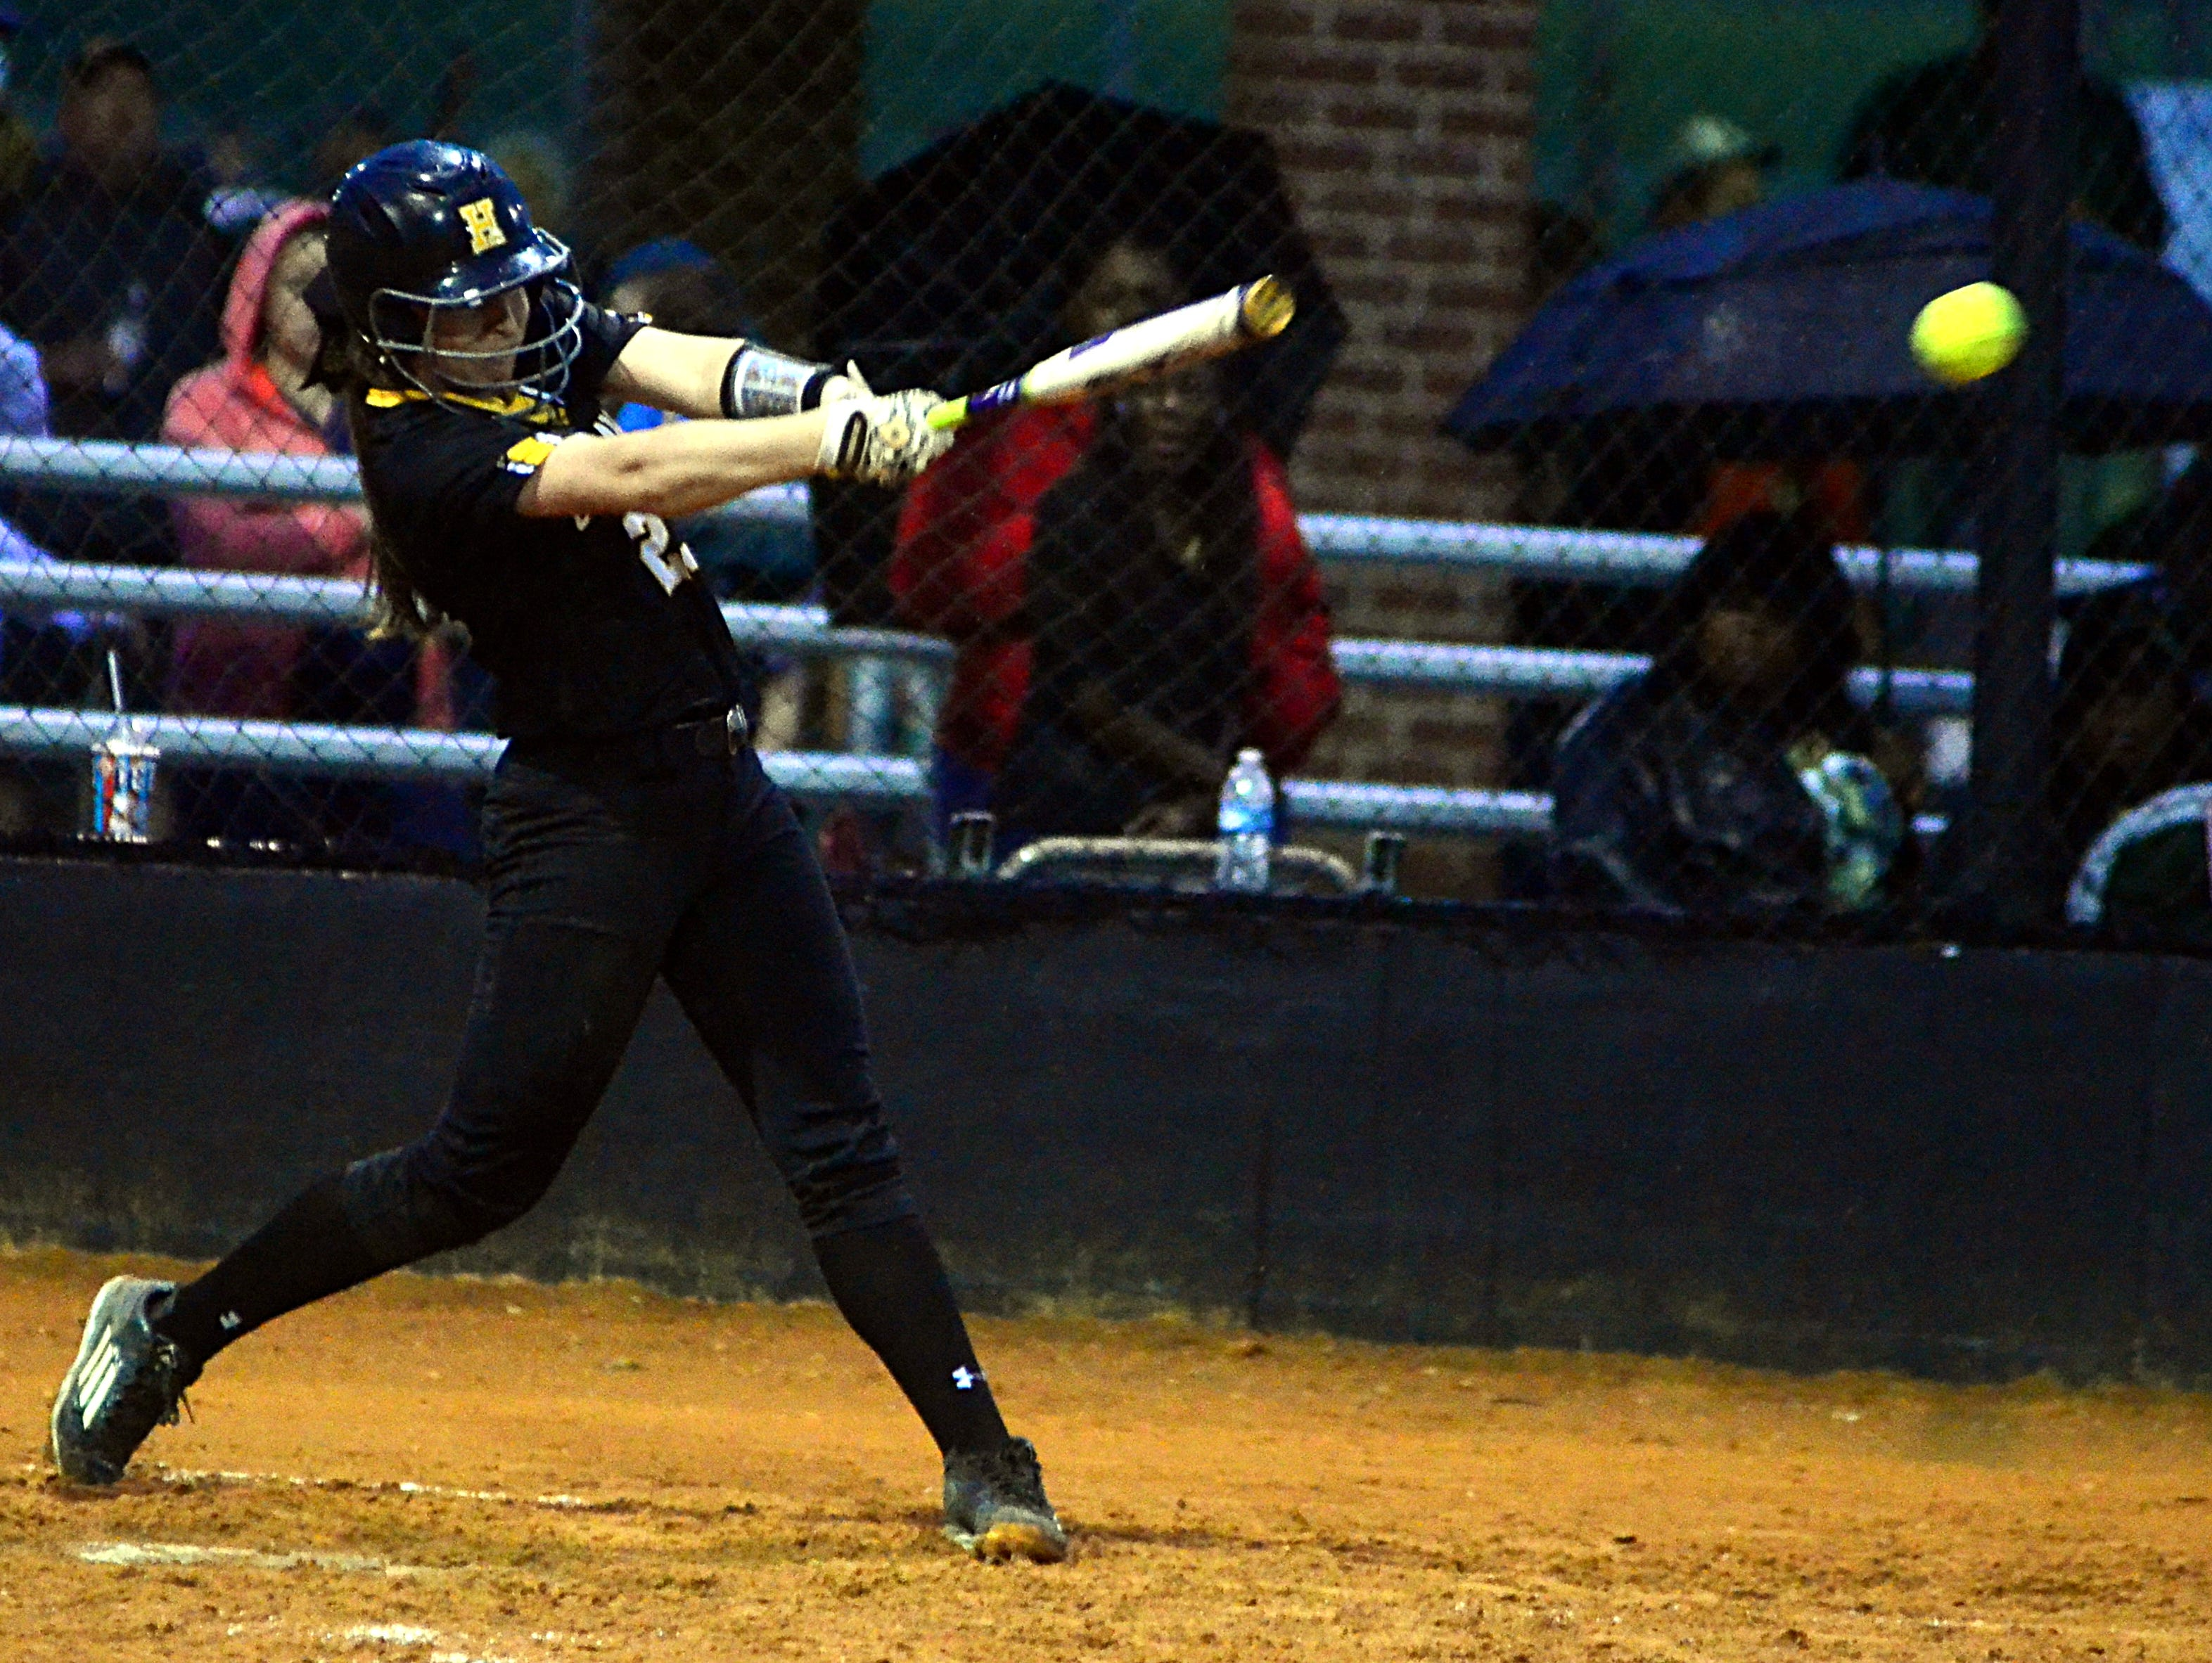 Hendersonville High junior Matti Byrd doubled and drove in a run during the third inning of Monday evening's 5-2 victory over Henry County.